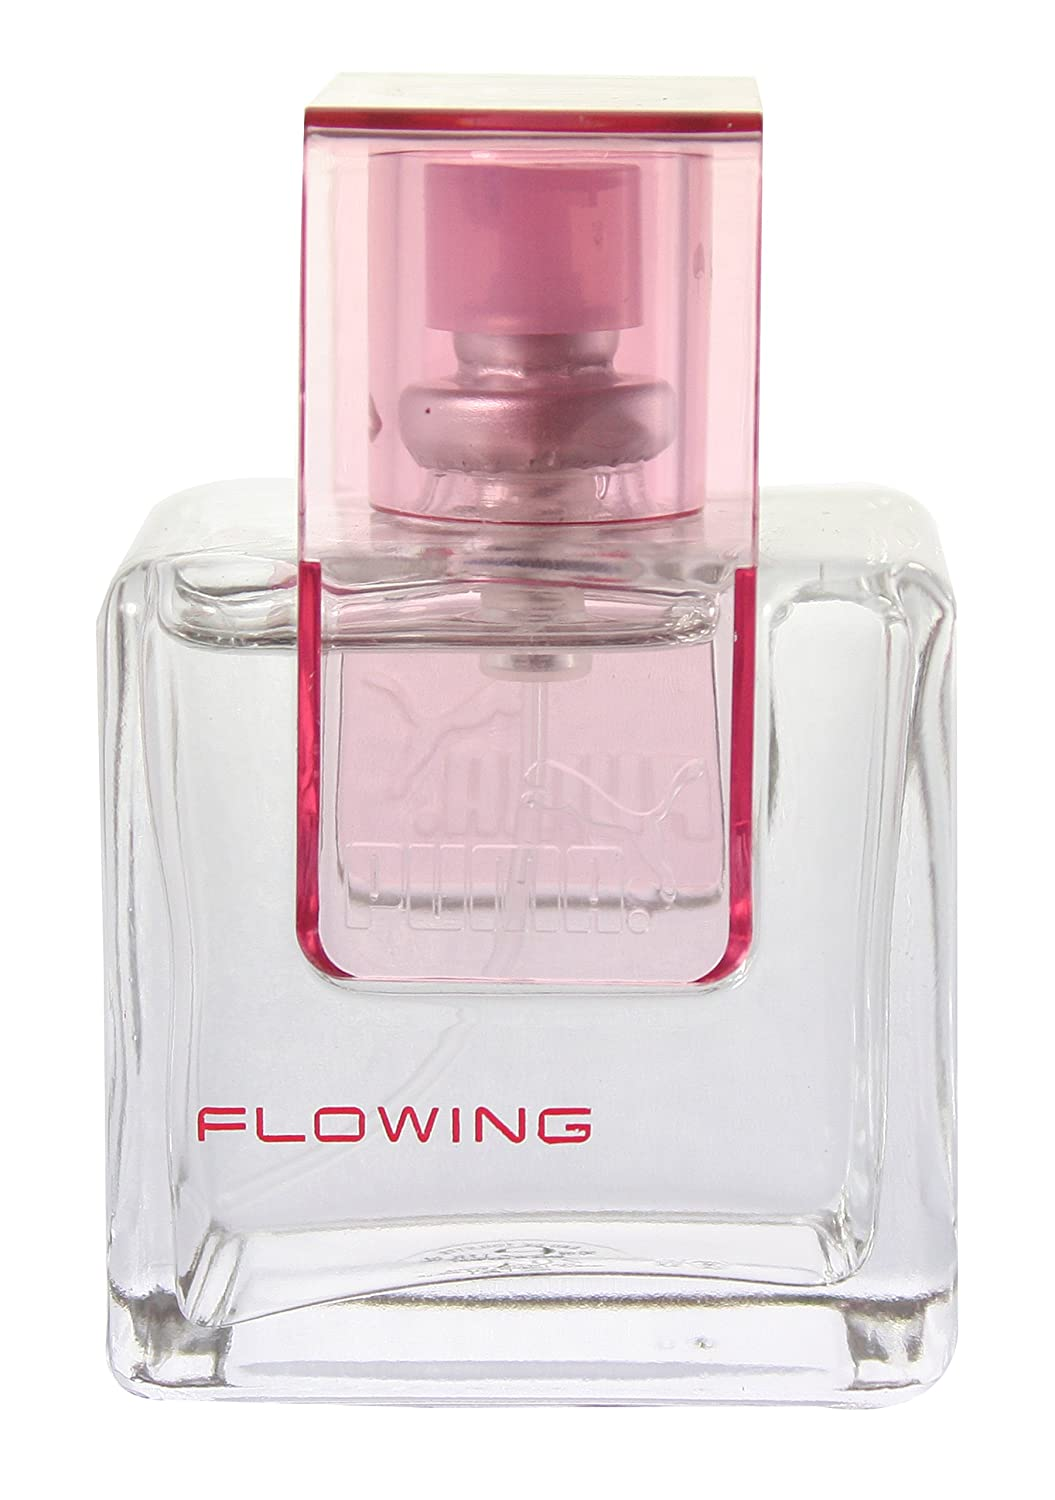 biografía Procesando Al por menor  Puma Flowing By Puma For Women. Eau De Toilette Spray 1.7 Oz. : Puma  Flowing Fragrance : Beauty - Amazon.com